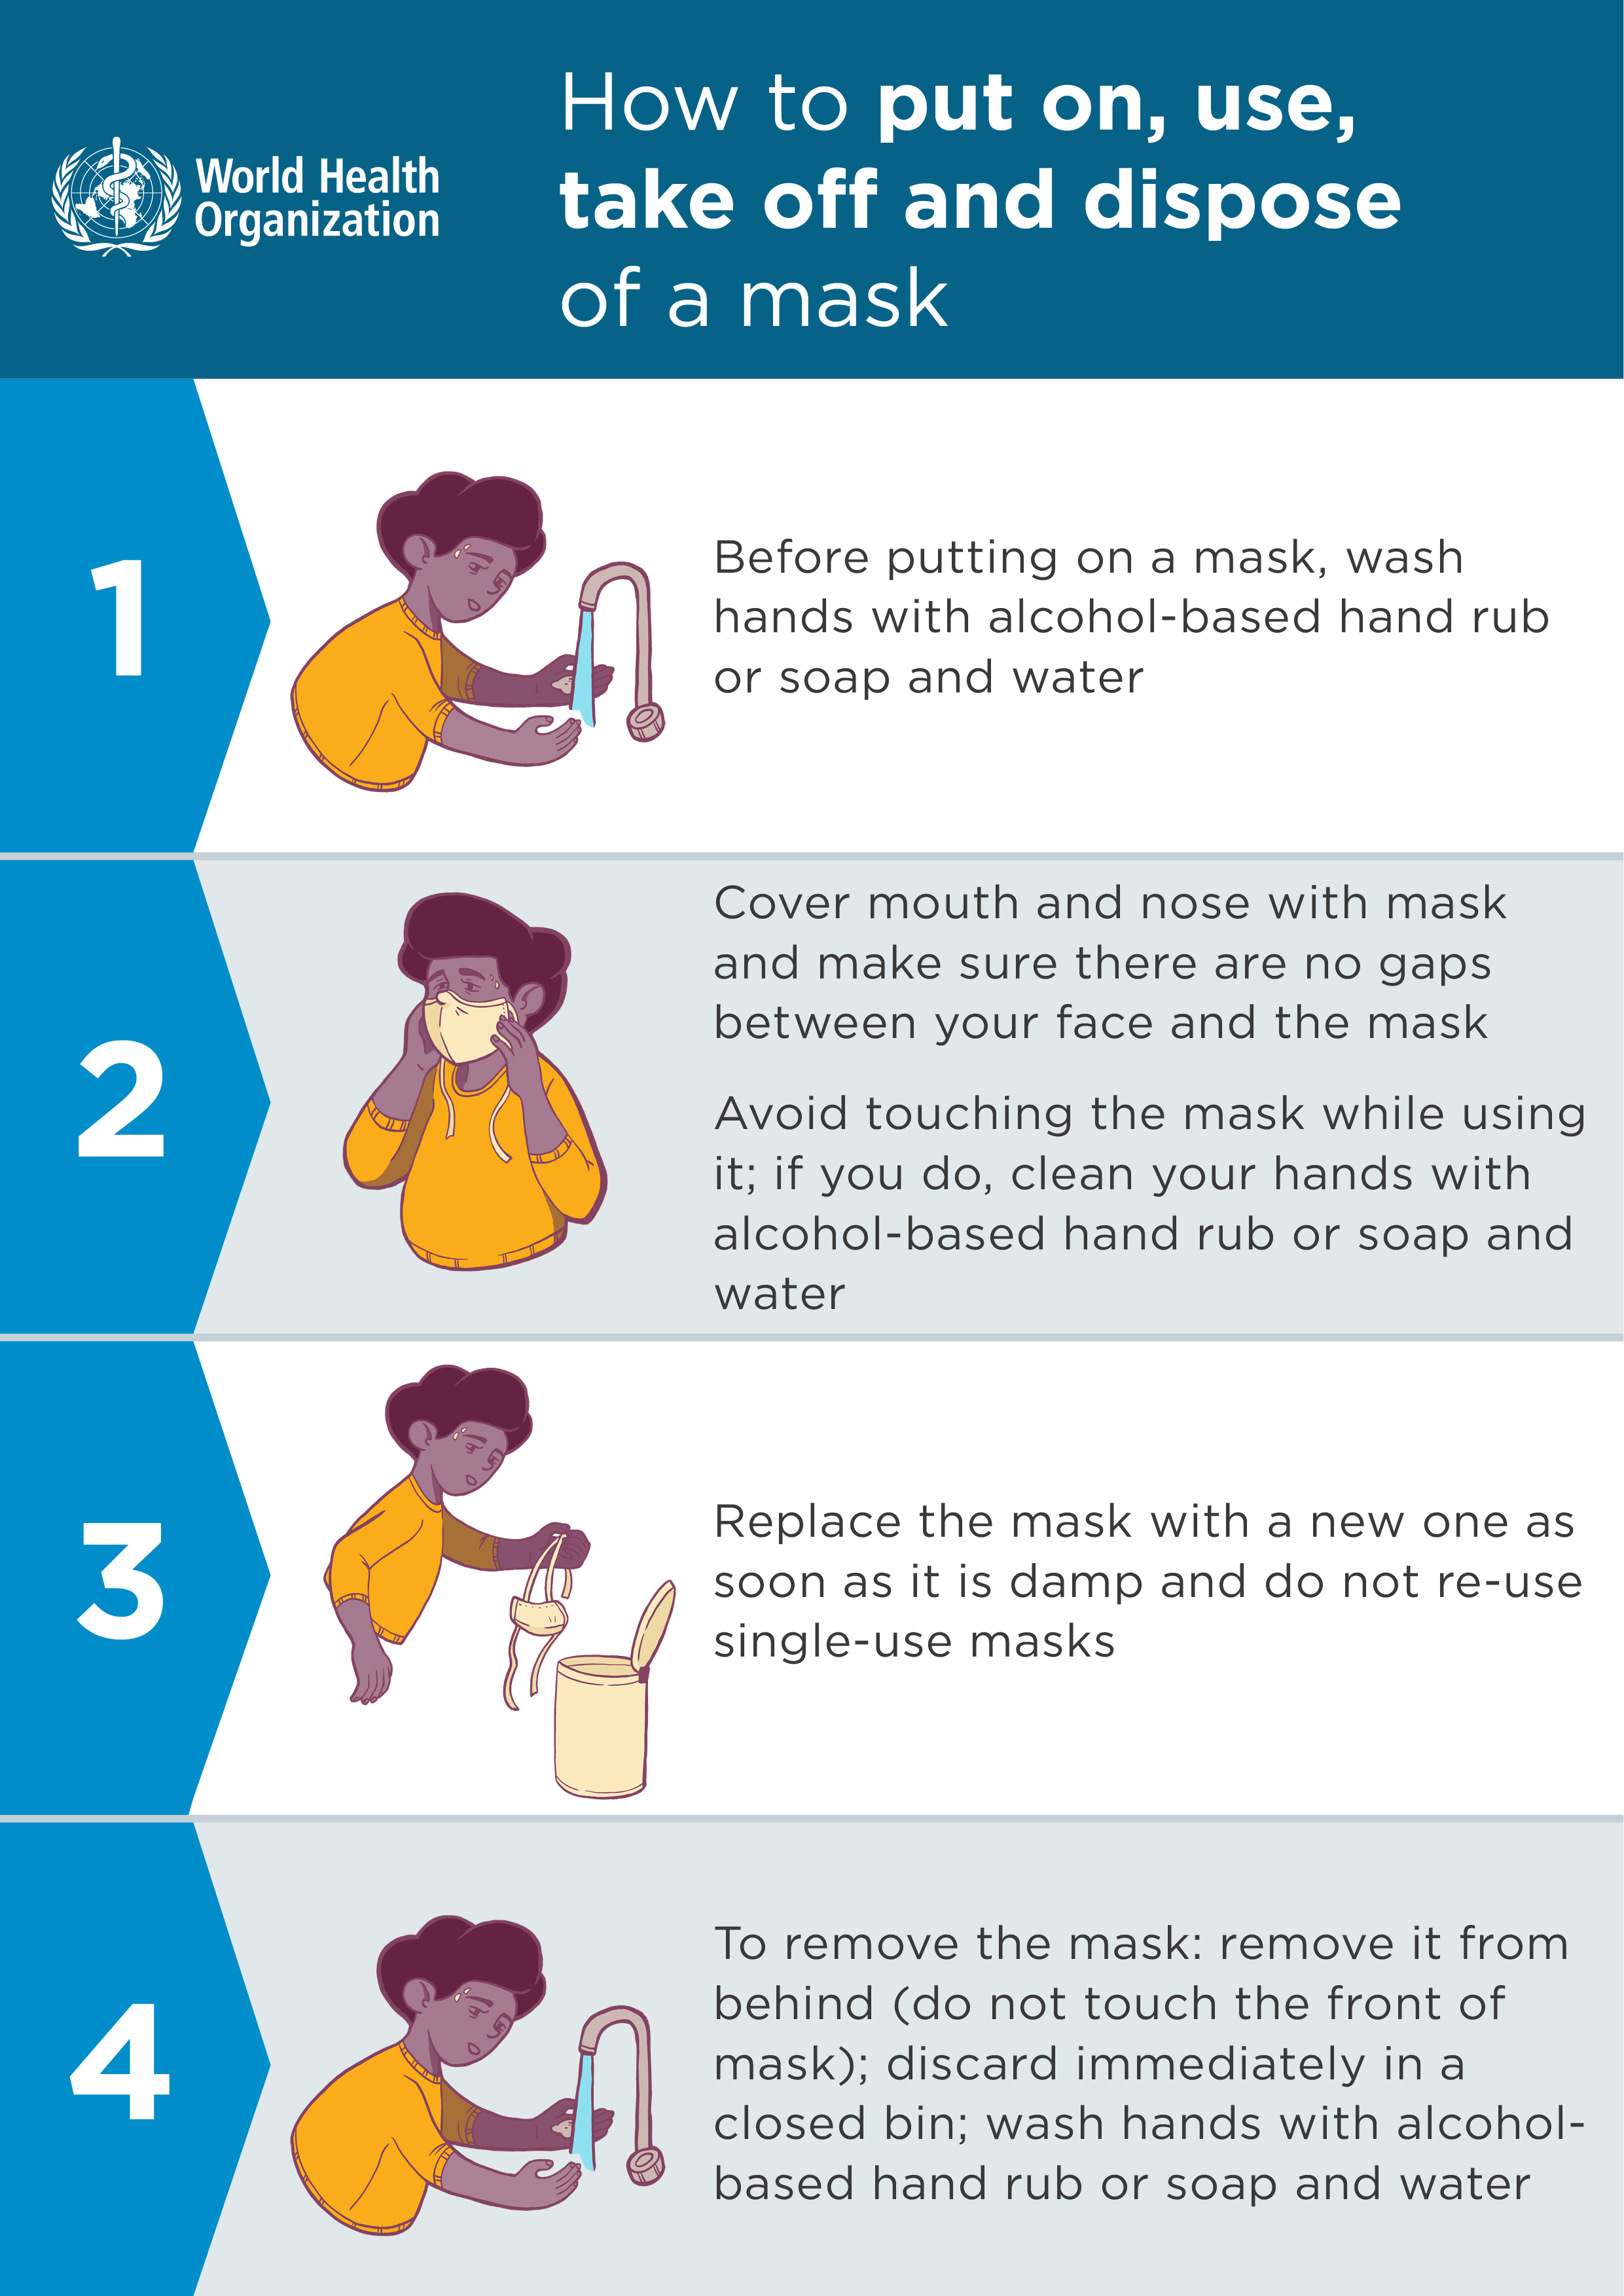 A visual graphic display of the World Health Organisation advice and guidance on how to put on, use, take off and dispose of a mask